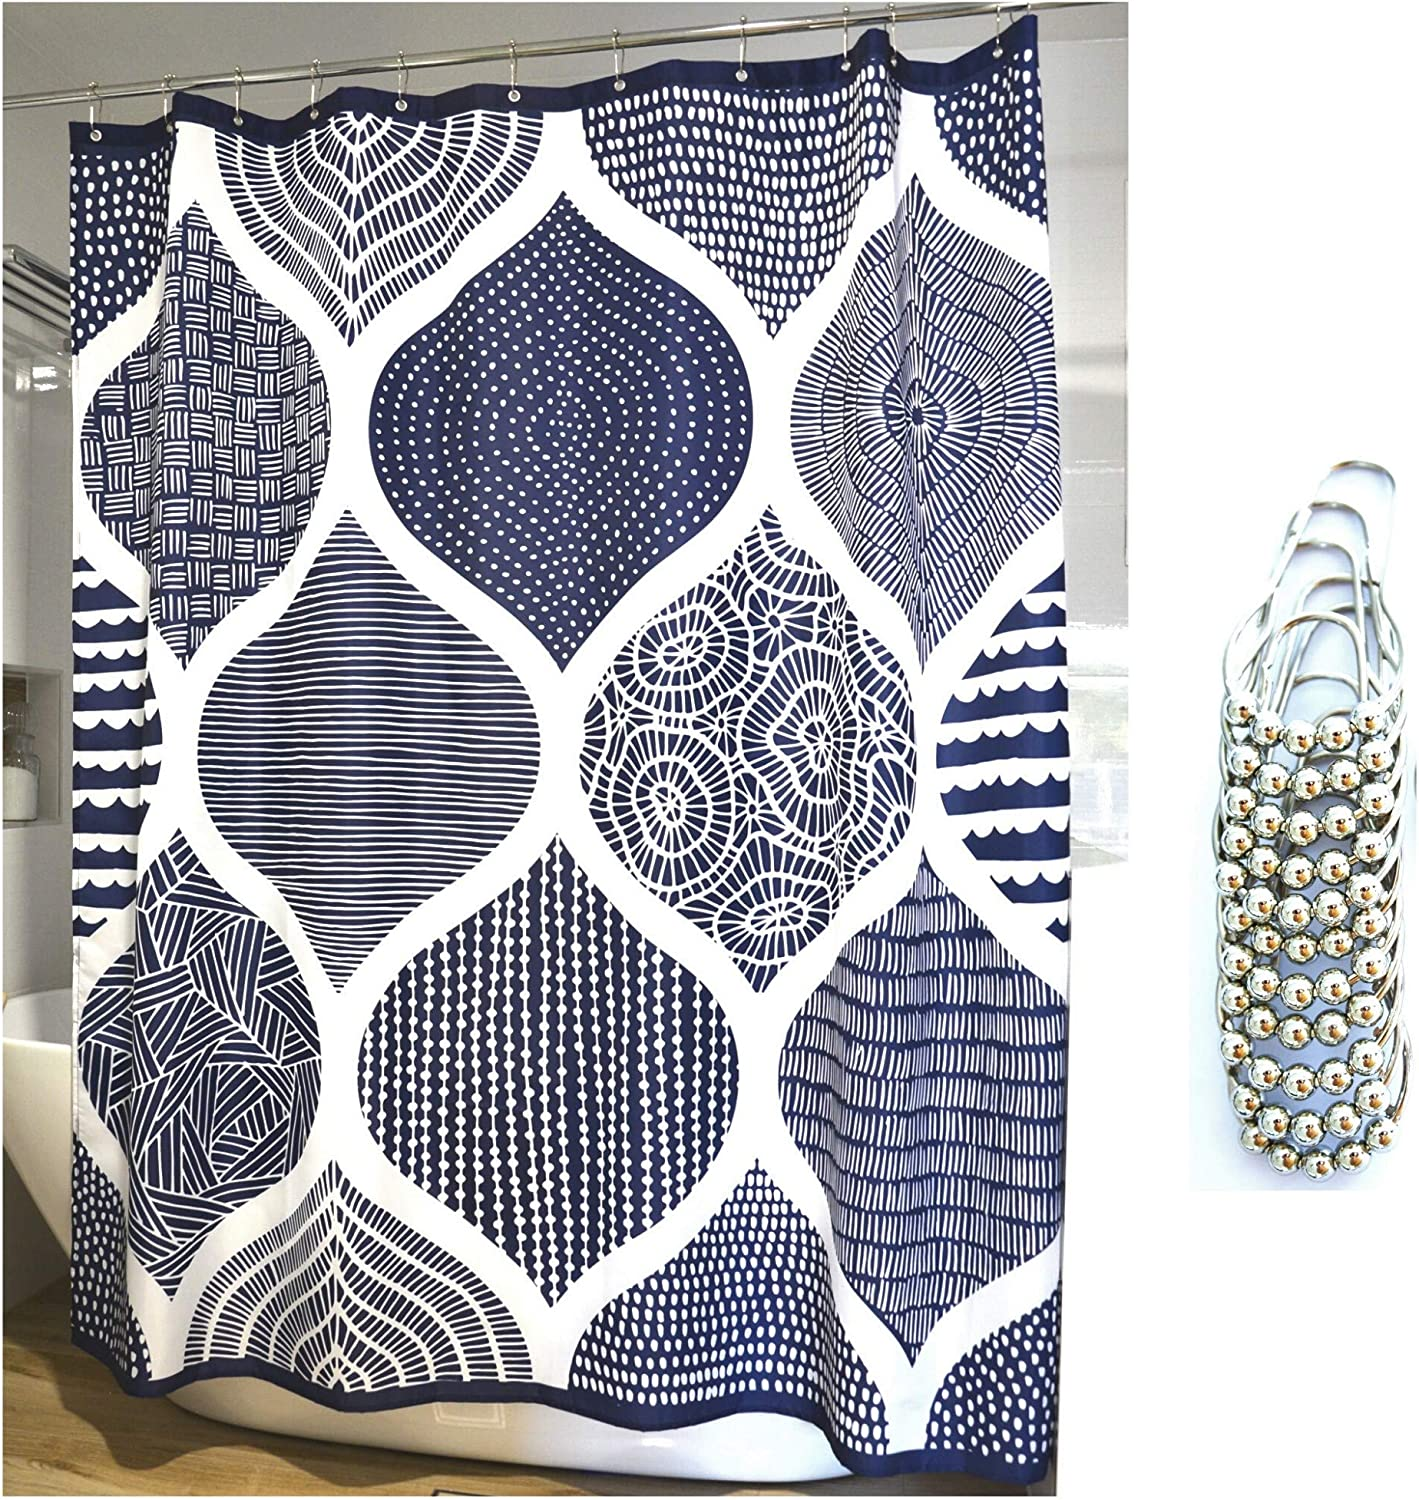 "Juici Home White and Navy Blue Shower Curtain Includes 12 Metal Glide Shower Hooks, Moroccan Pattern, Boho, Suits Modern Home Decor, Rustic or as a Farmhouse Shower Curtain 72"" x 72"""